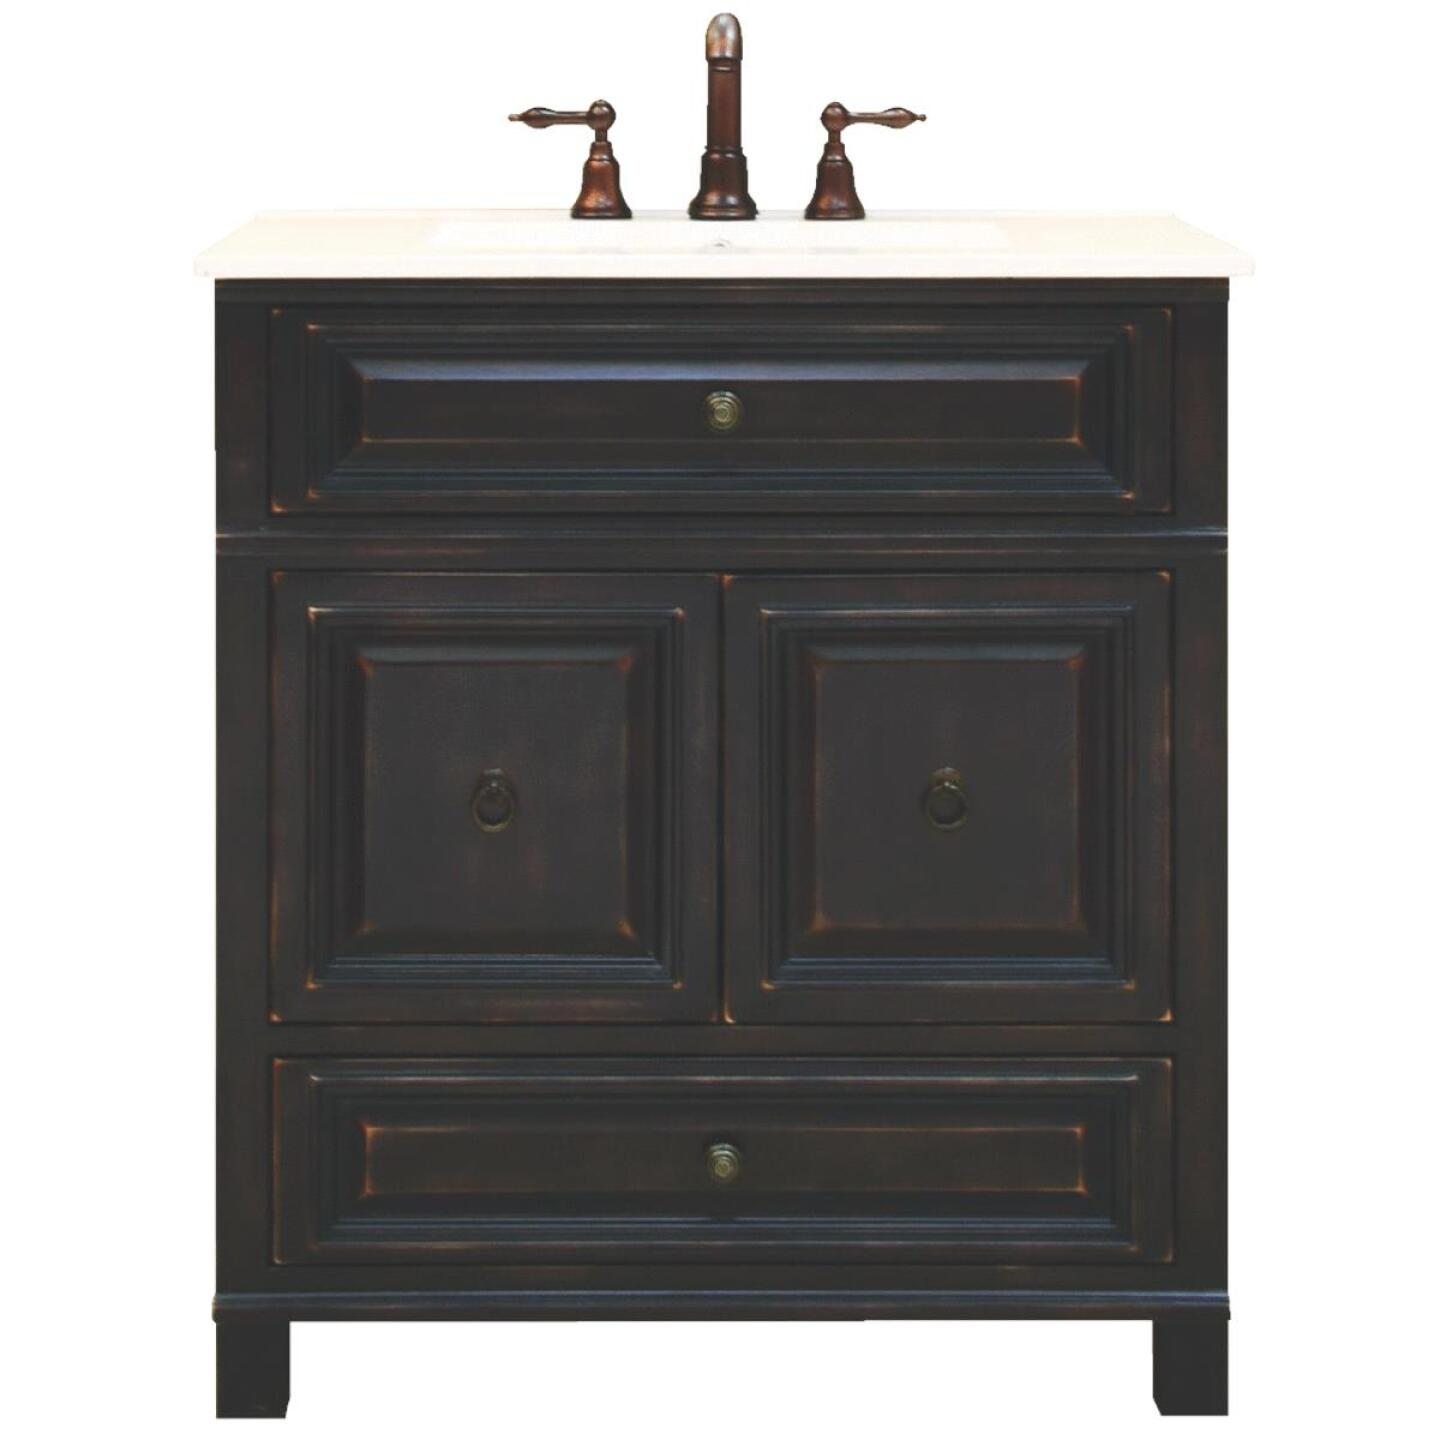 Sunny Wood Barton Hill Black Onyx 30 In. W x 34 In. H x 21 In. D Vanity Base, 2 Door/1 Drawer Image 166